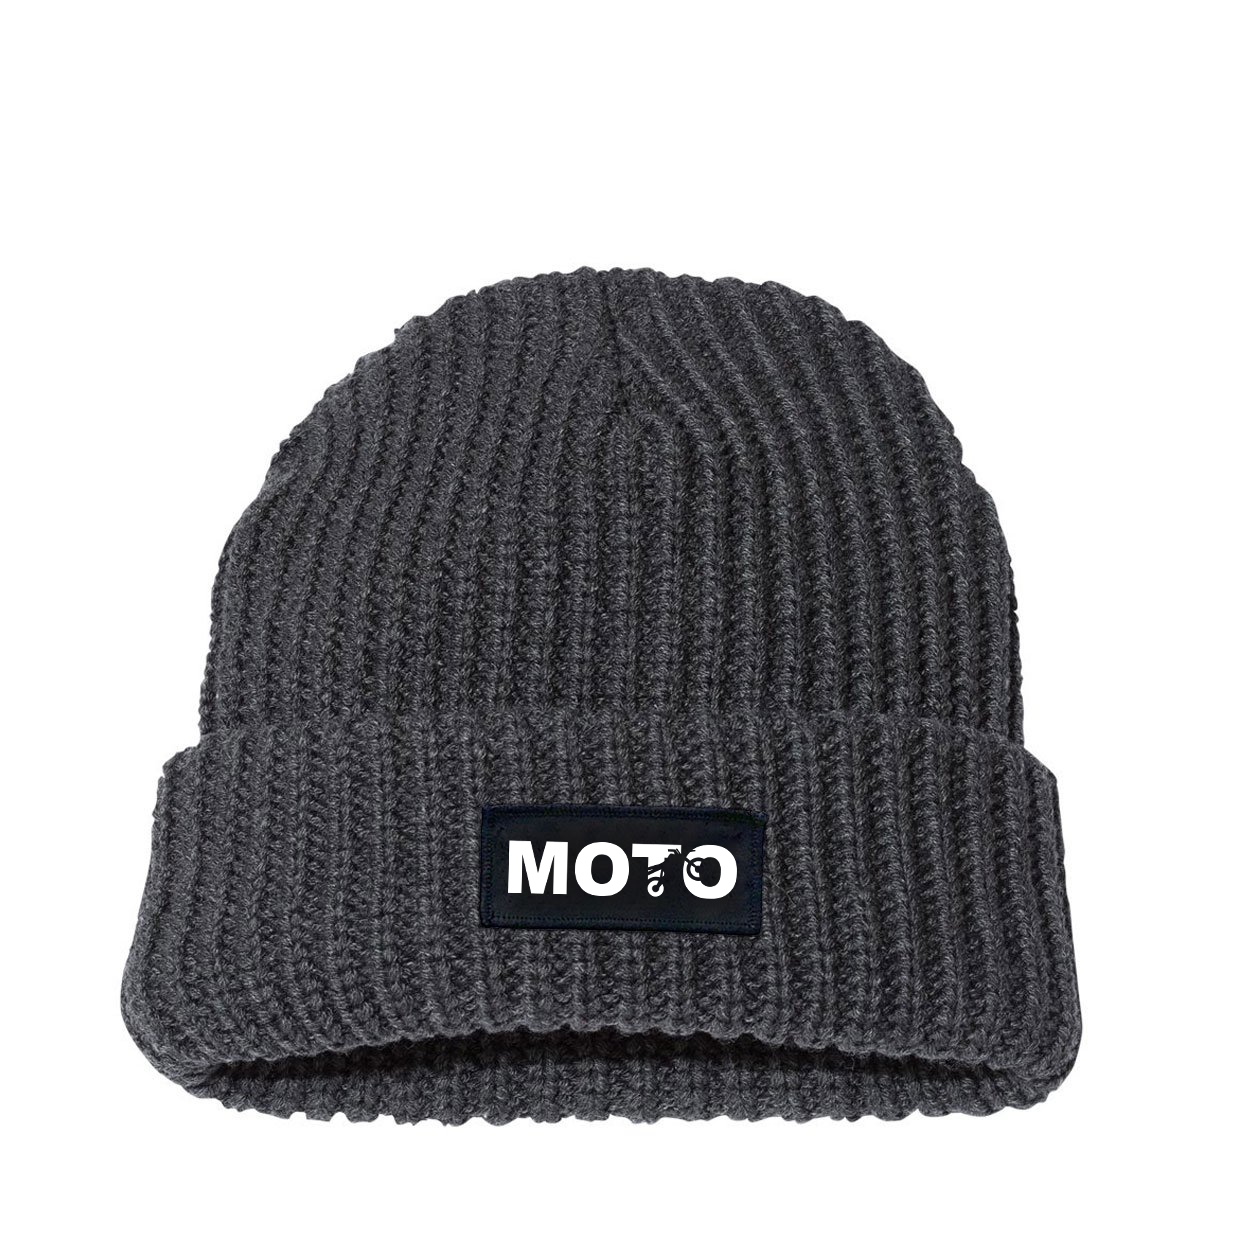 Moto Wheelie Logo Night Out Woven Patch Roll Up Jumbo Chunky Knit Beanie Charcoal (White Logo)